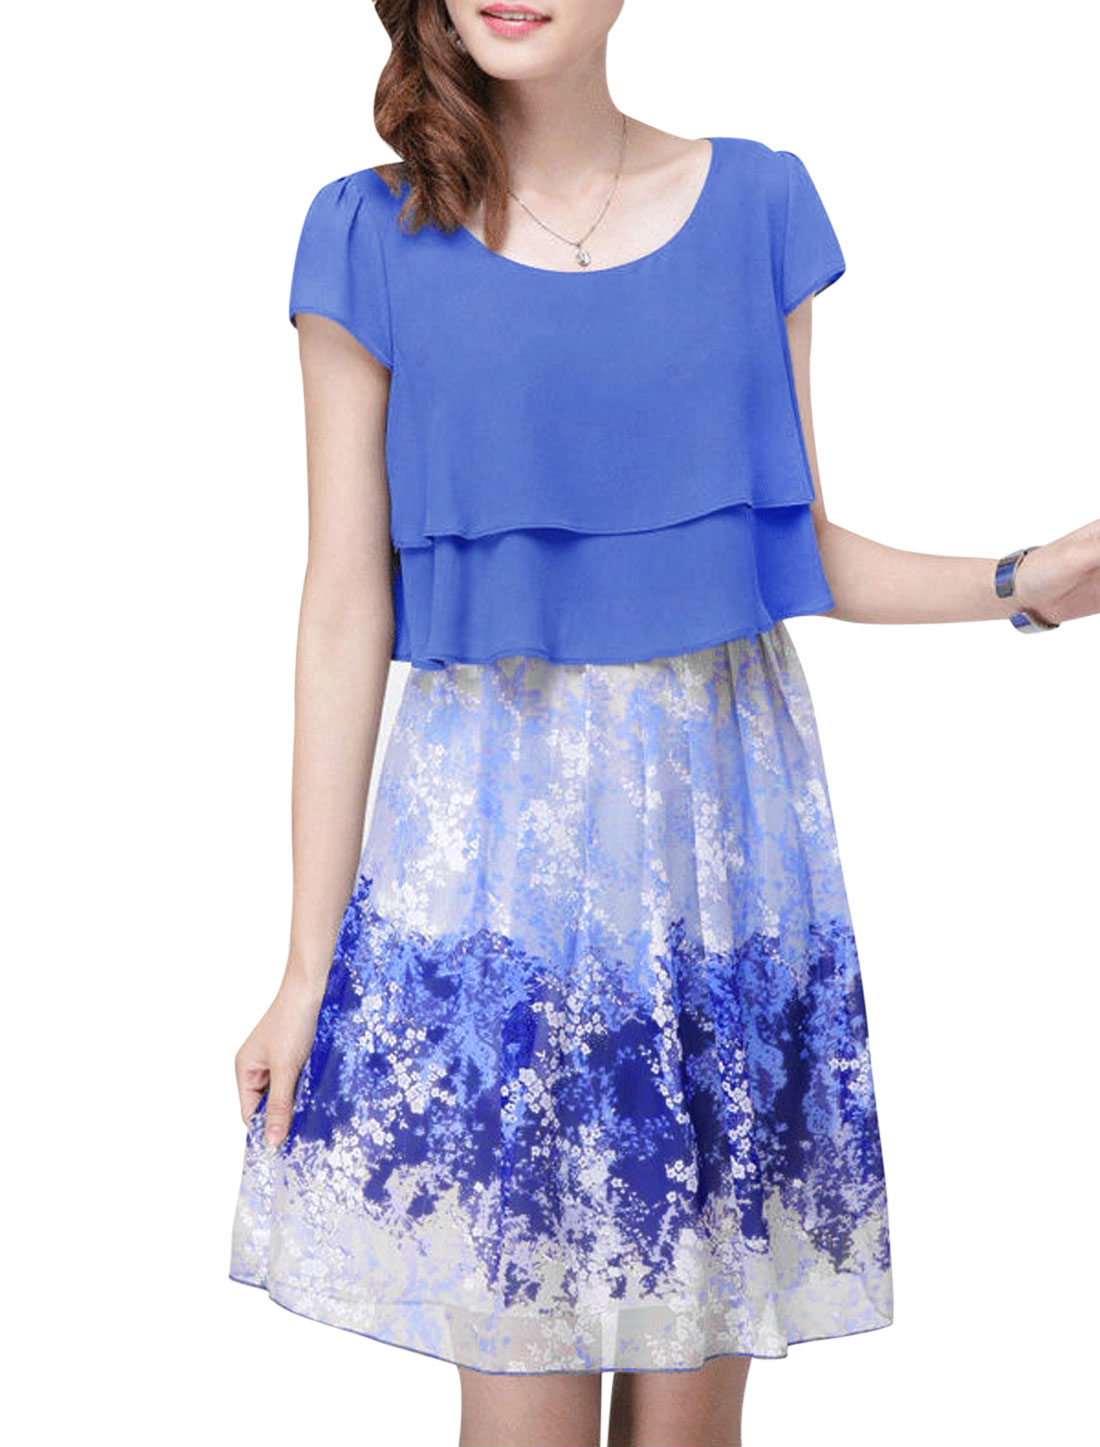 Lady Cap Sleeve Floral Prints Layered Design Dress Dark Blue L